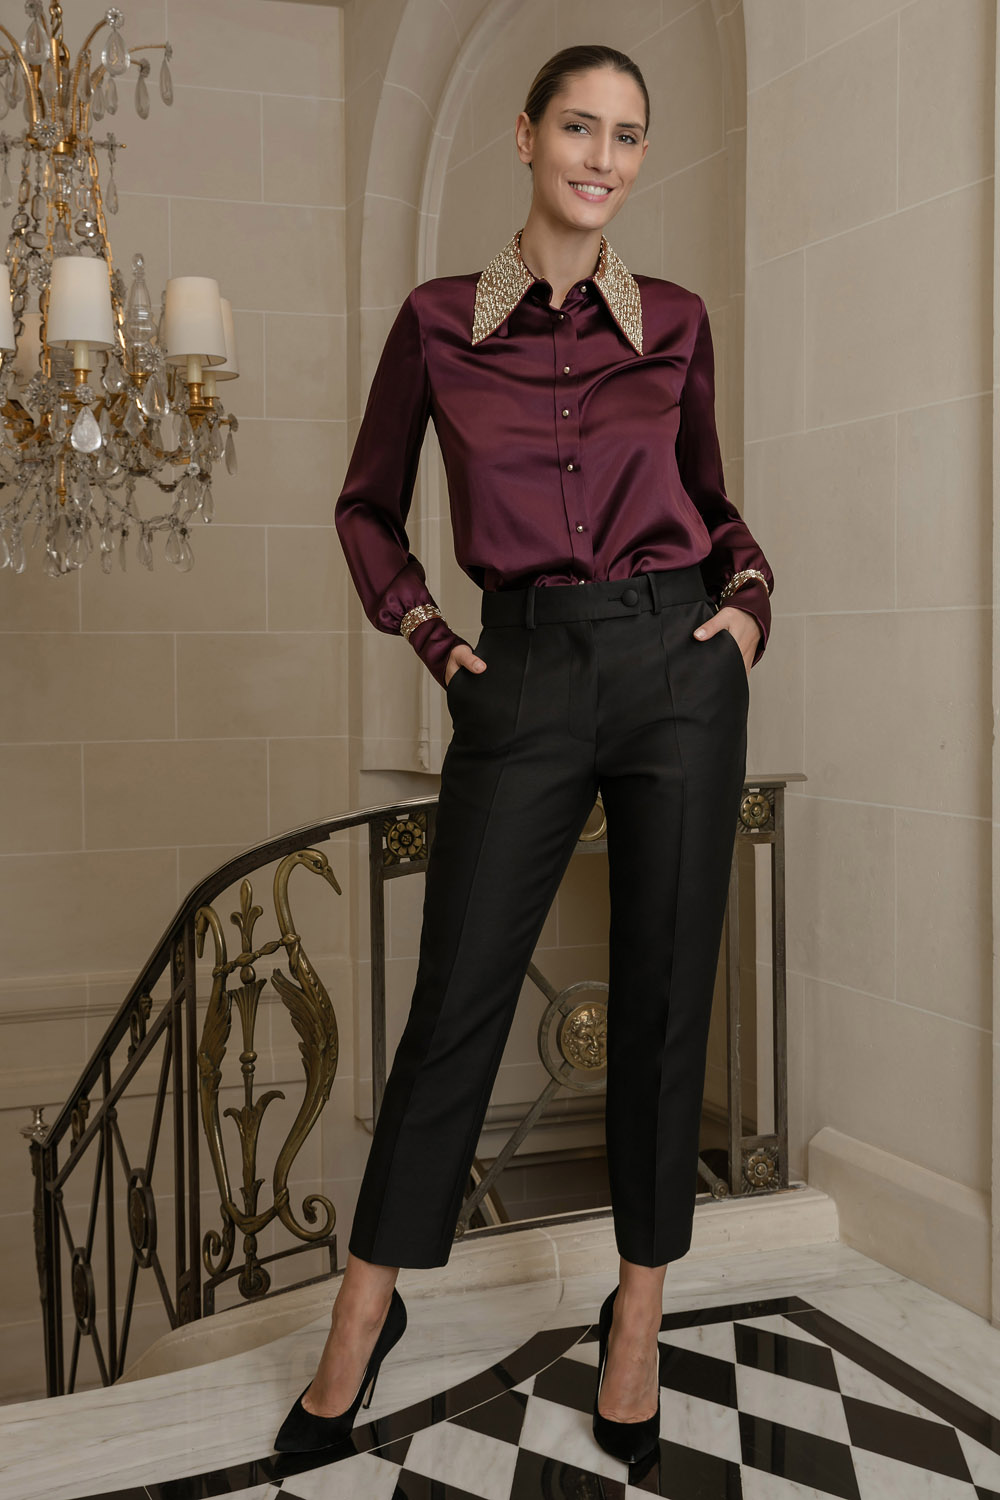 Silk black shirt with an embroidered collar